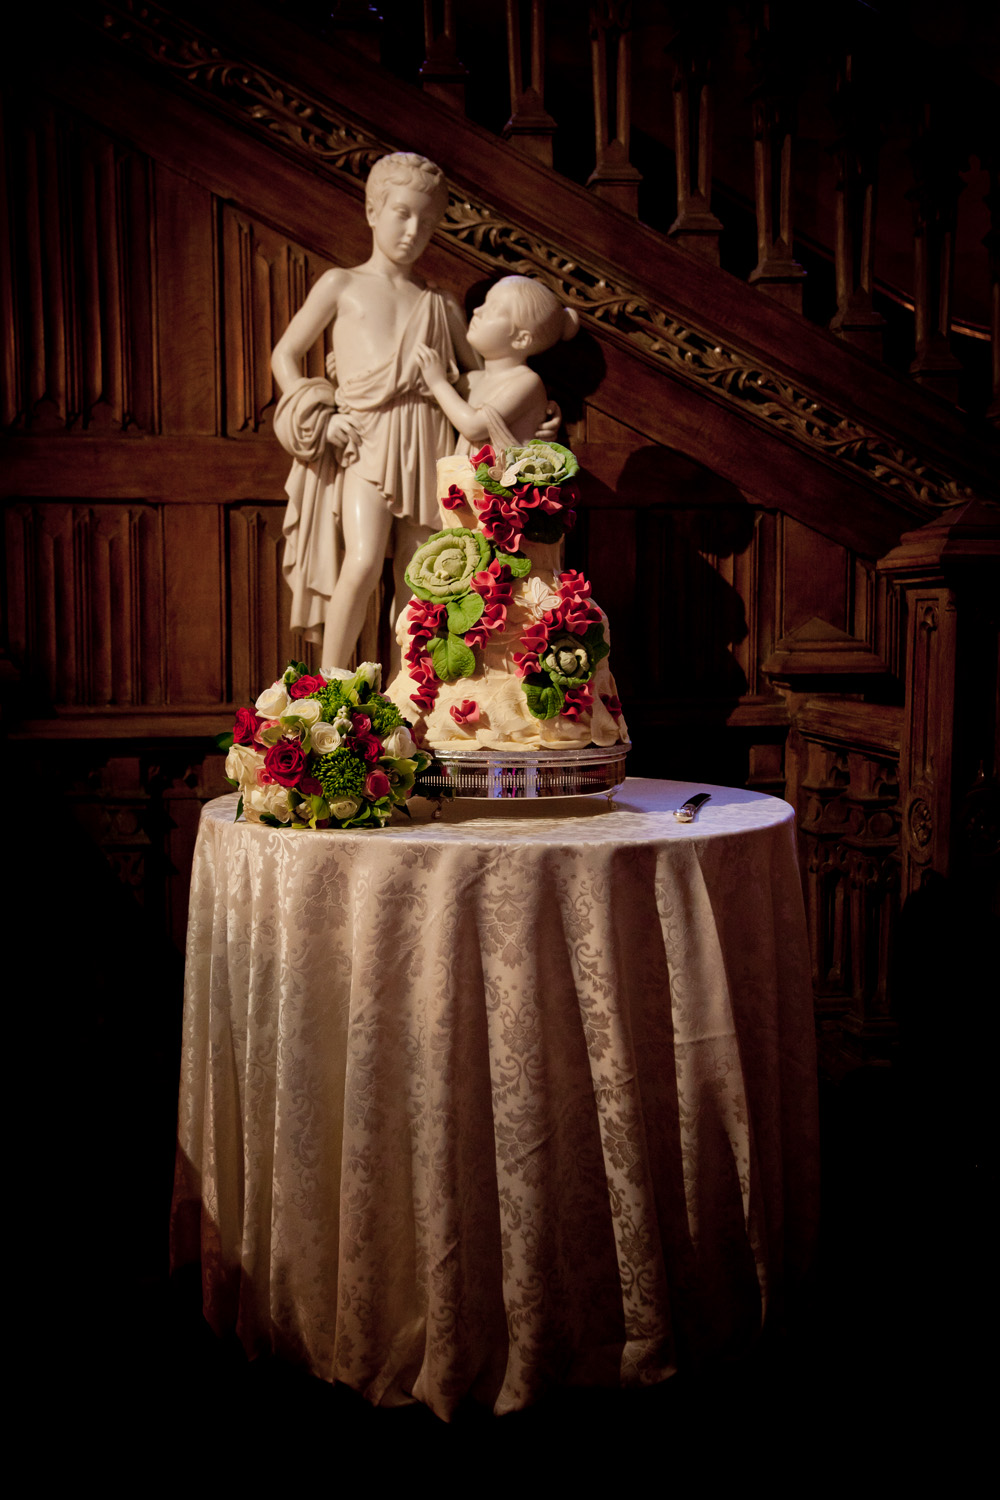 Highclere_Castle_Wedding_Photographer_Newbury_Berkshire_043.jpg